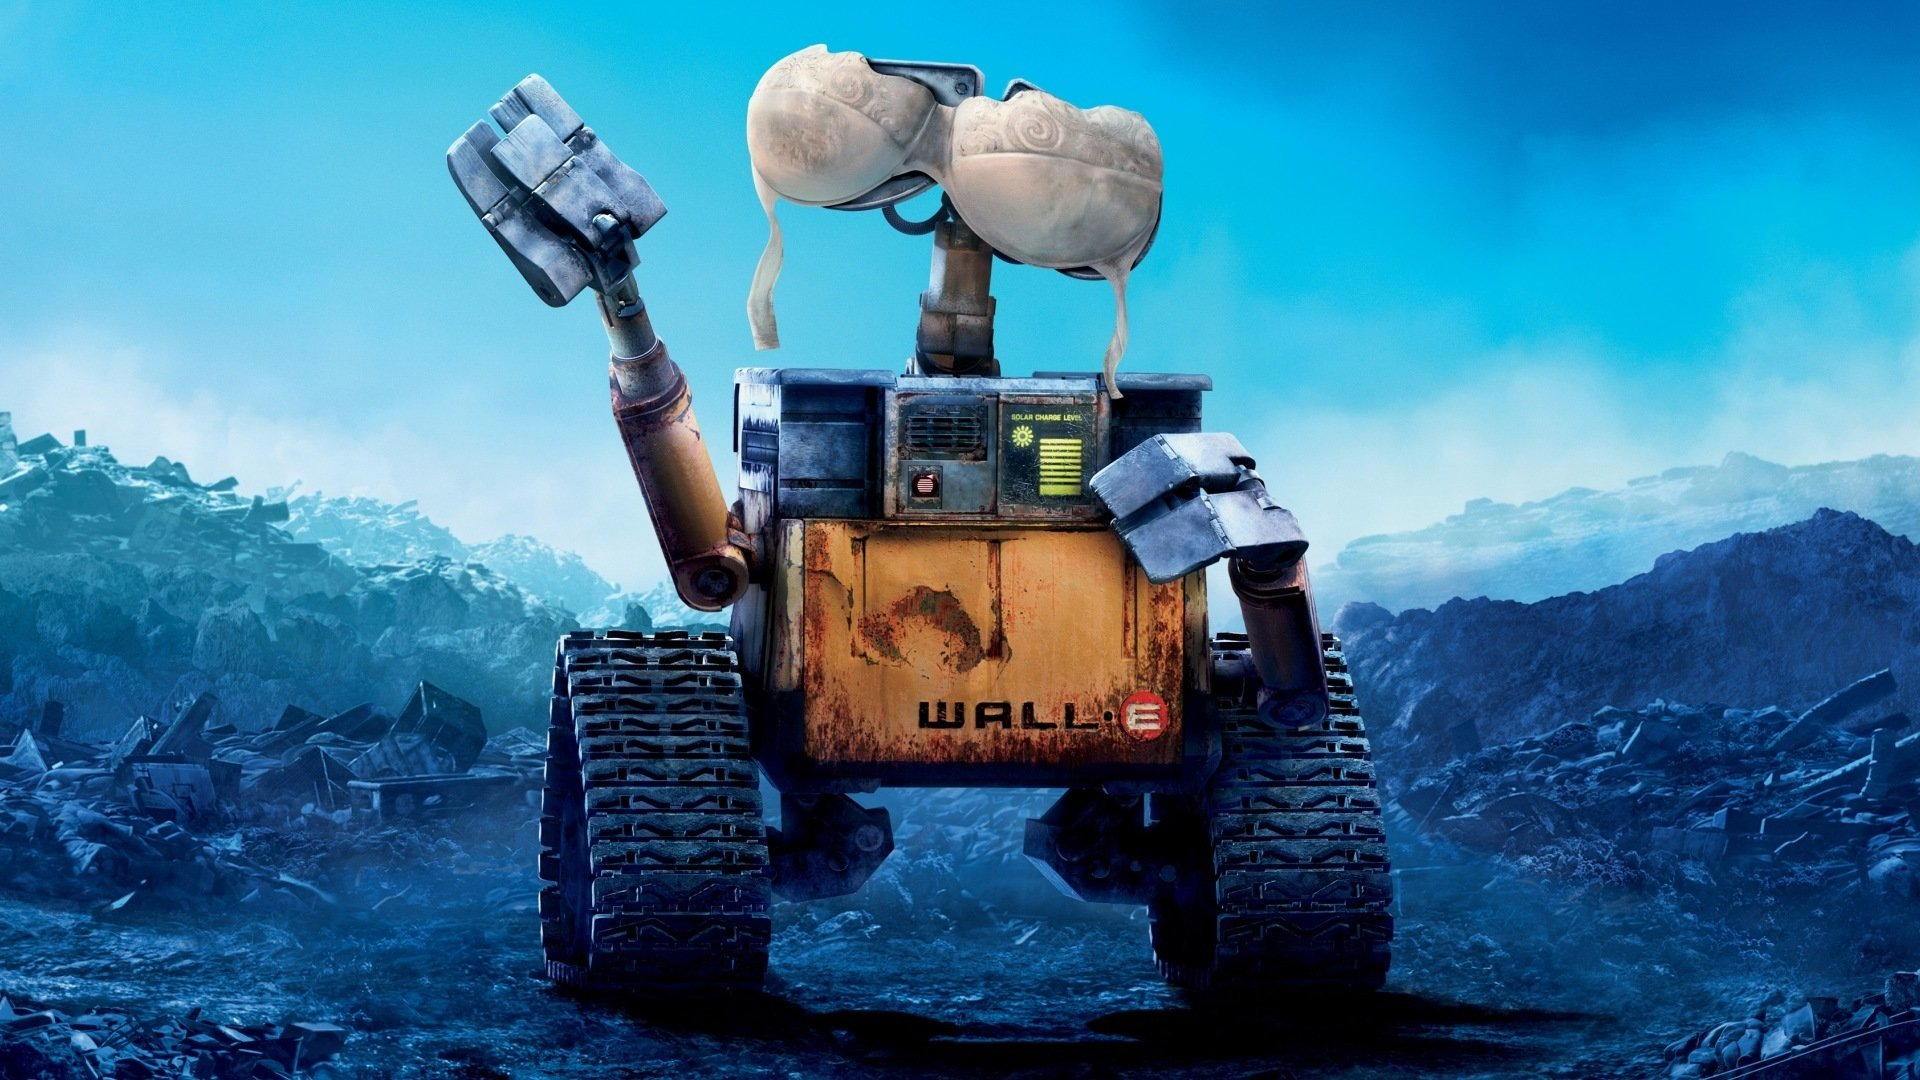 wall-e desktop wallpaper